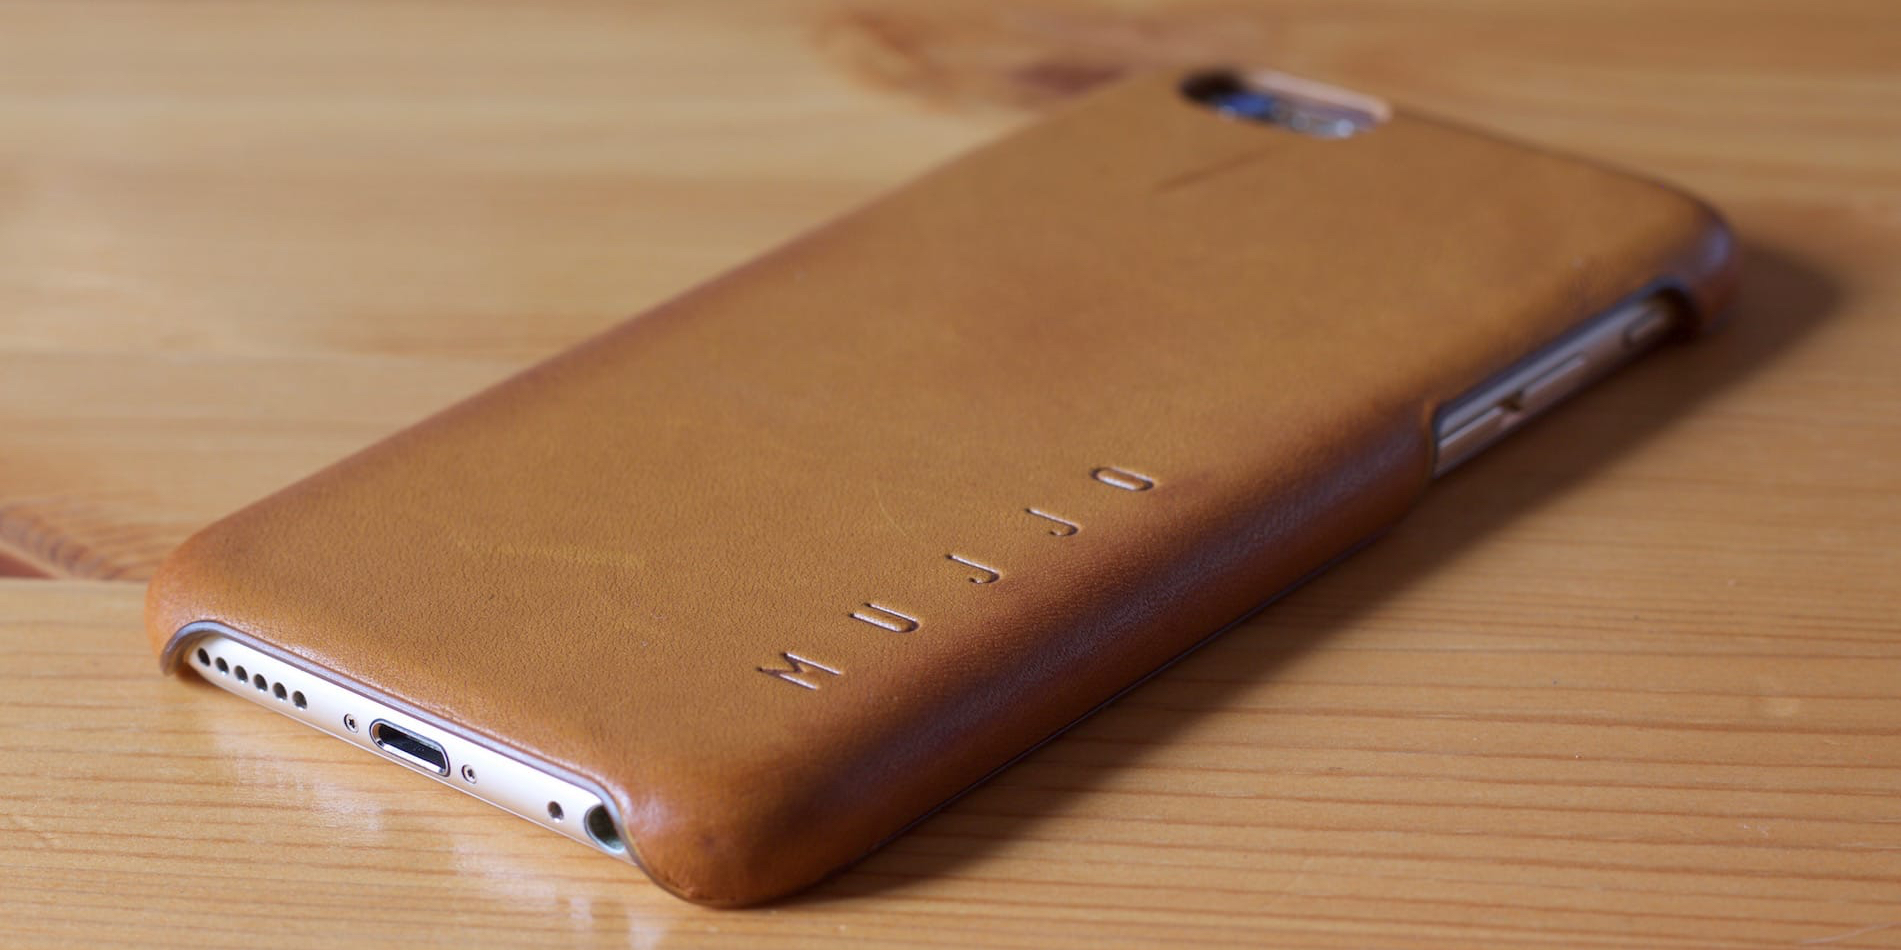 Mujjo Leather Case in Tan for iPhone 6 Featured Image